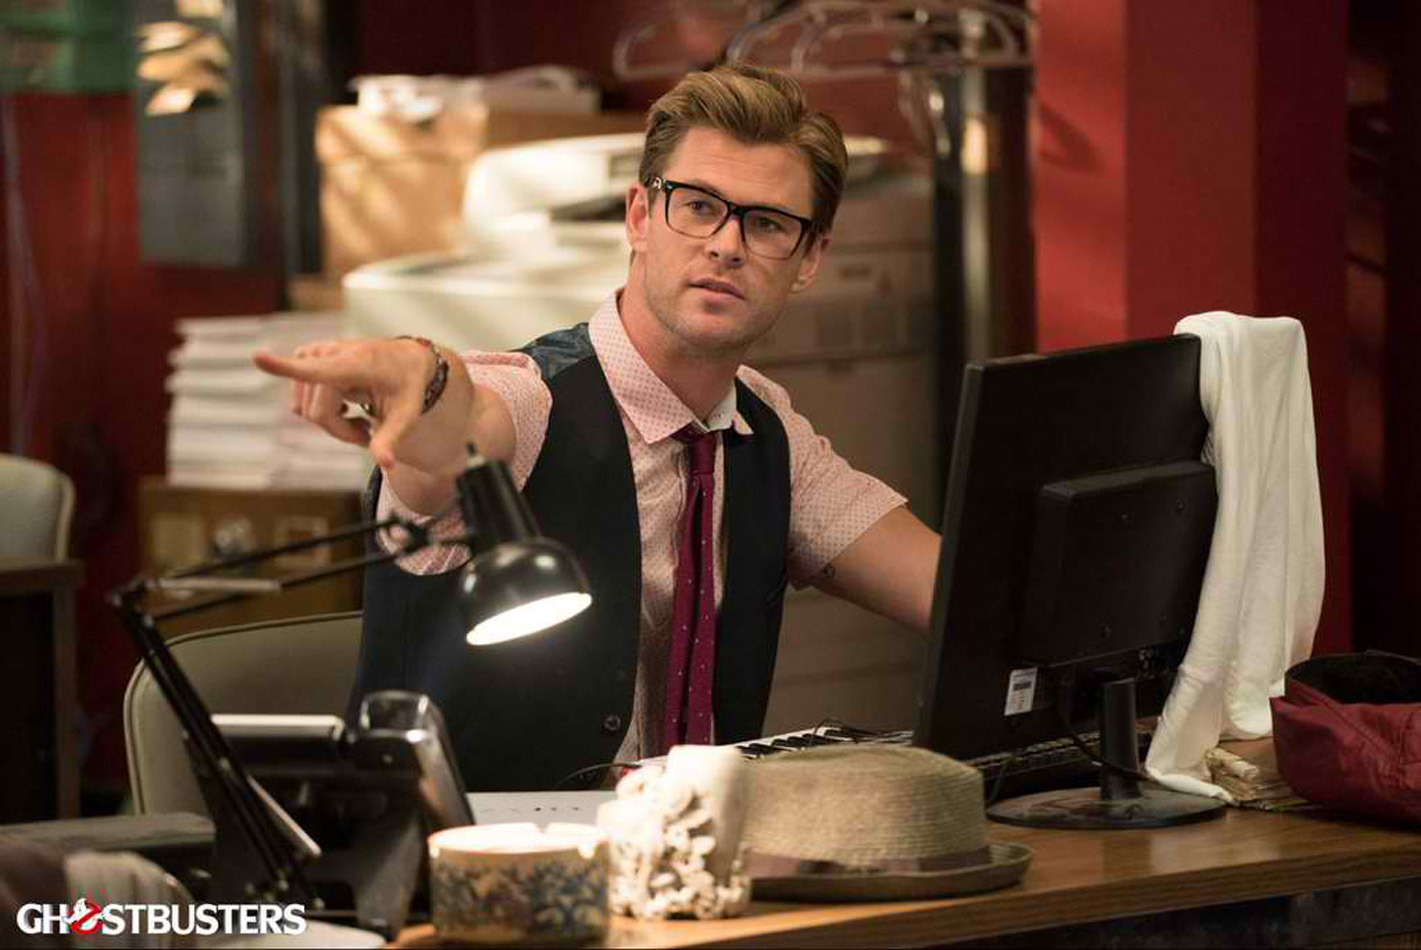 CHRIS HEMSWORTH. Chris plays the Ghostbusters' secretary in the movie. Photo courtesy of Columbia Pictures